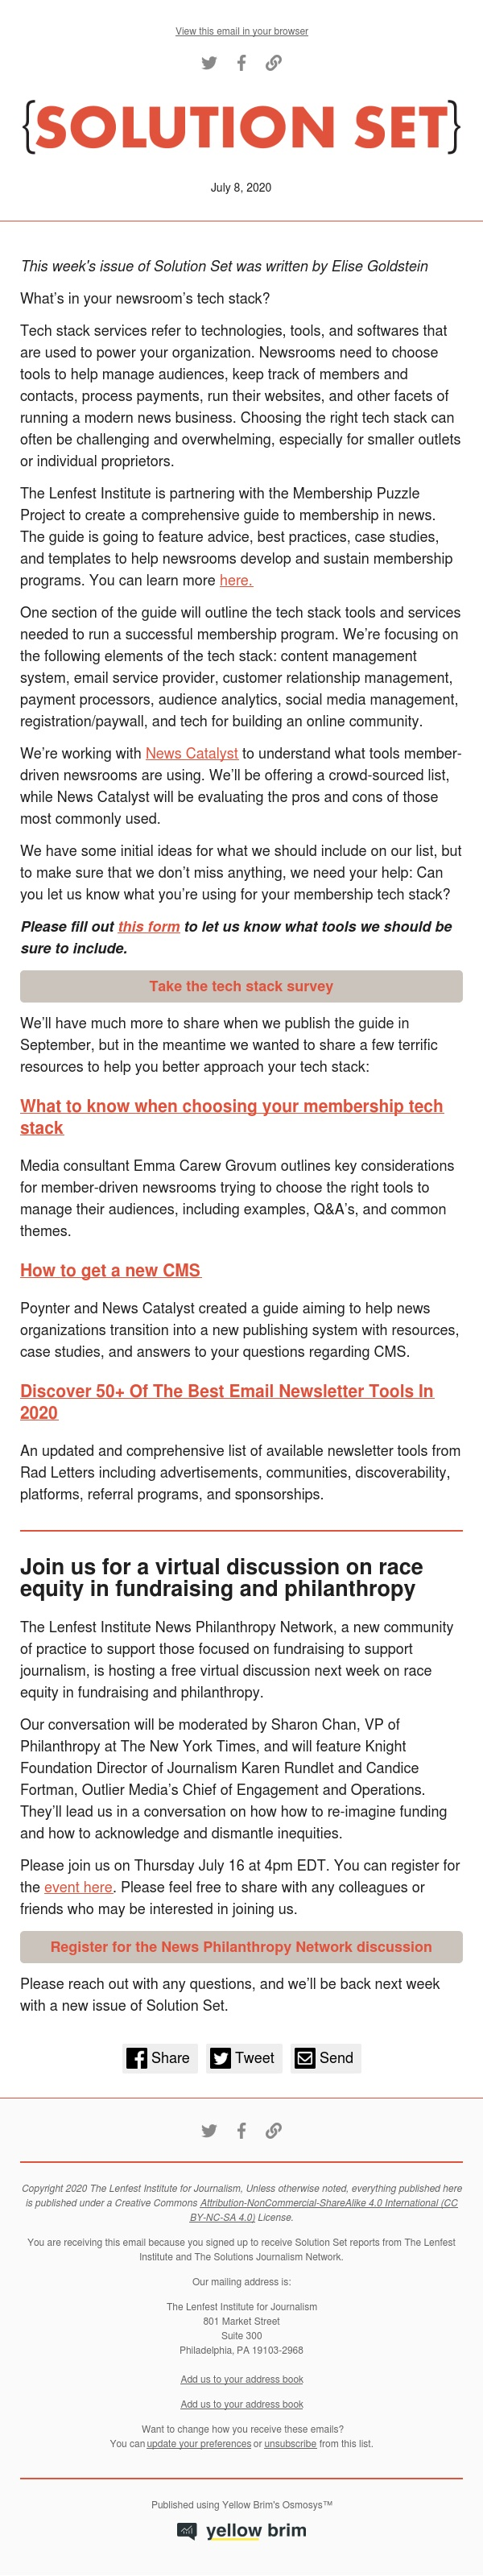 Solution Set: What tools does your newsroom use?